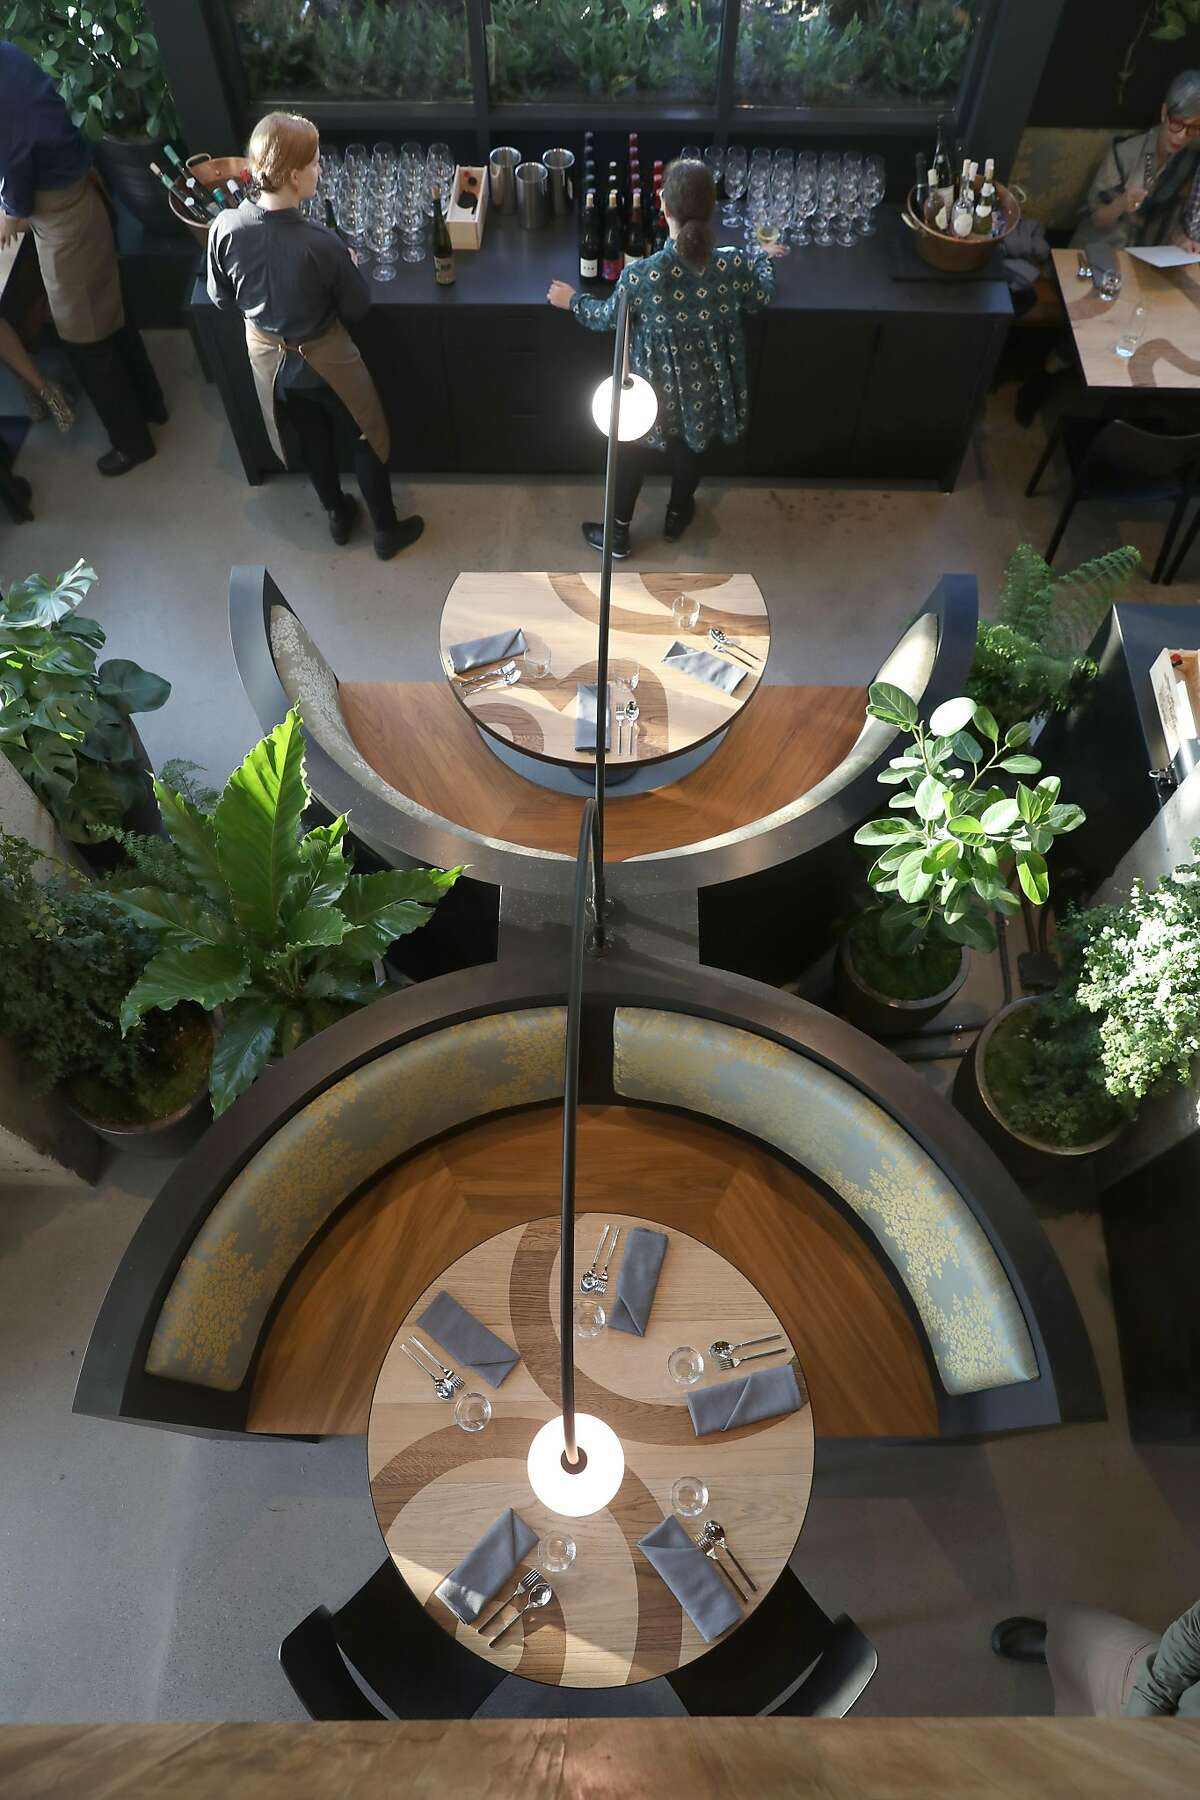 Overhead view of tables at the new San Francisco restaurant Nari seen at the Hotel Kabuki on Wednesday, Aug. 7, 2019 in San Francisco, Calif.